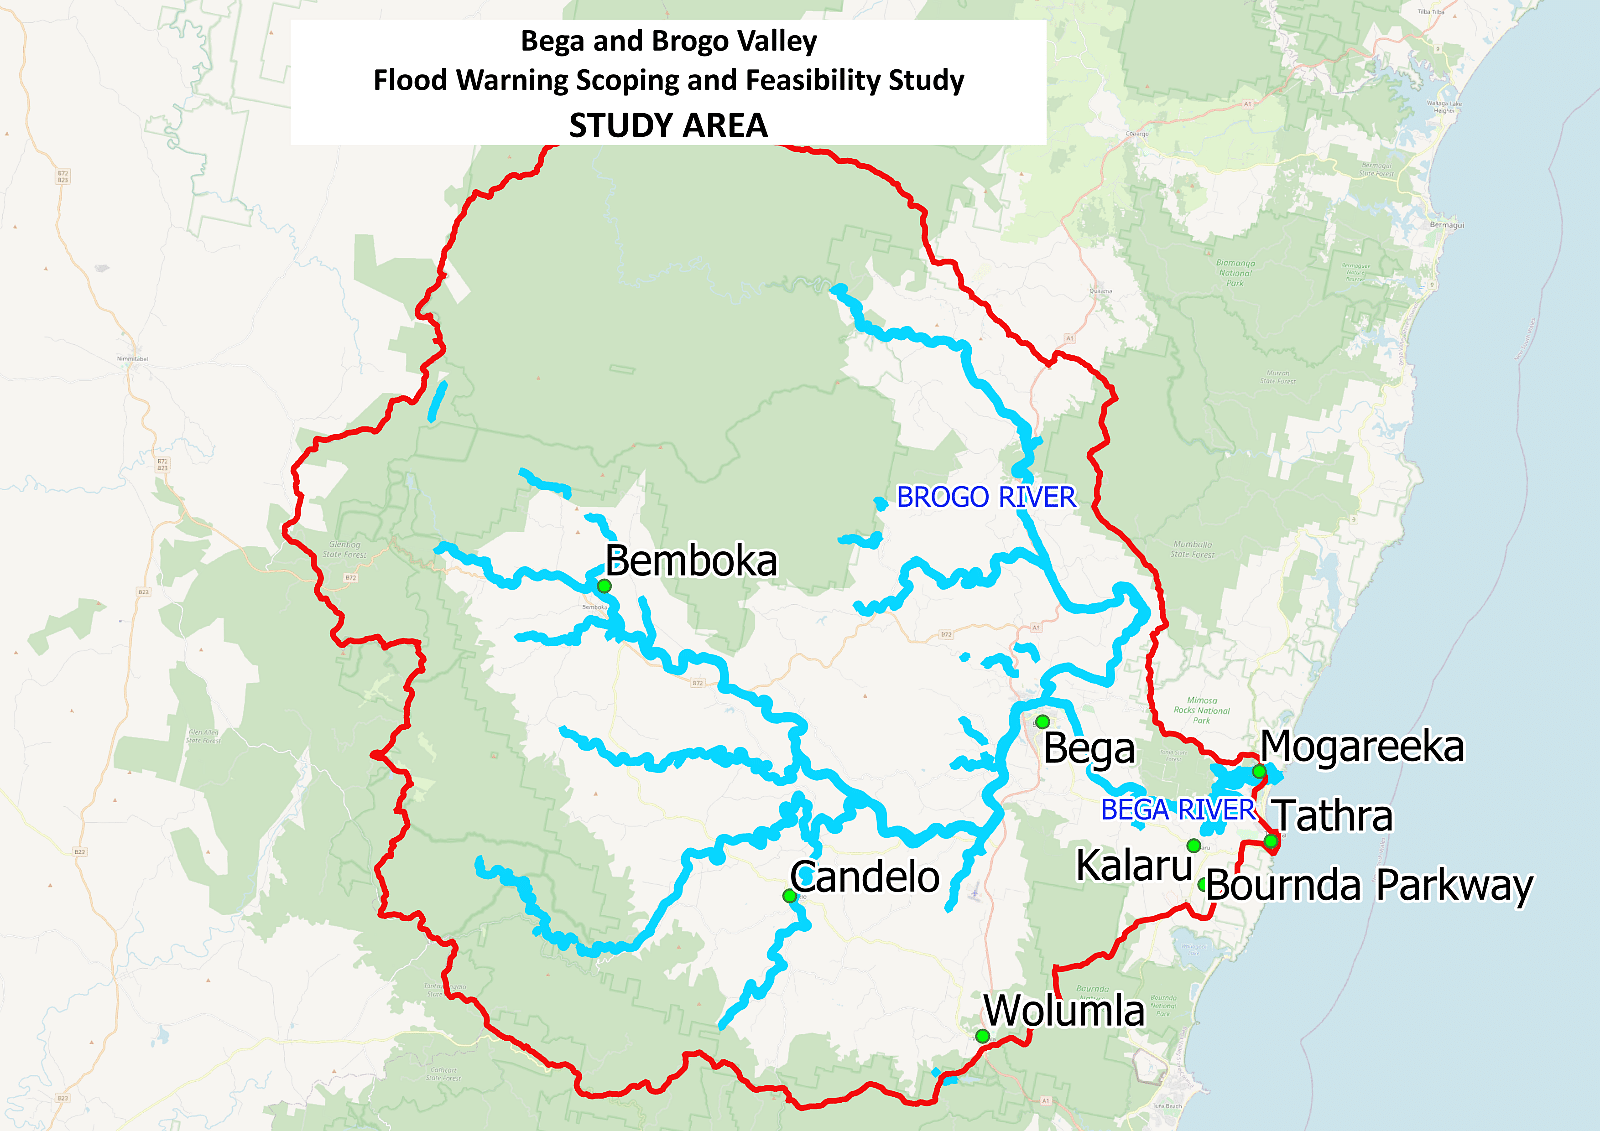 Map showing the total study area for this project.